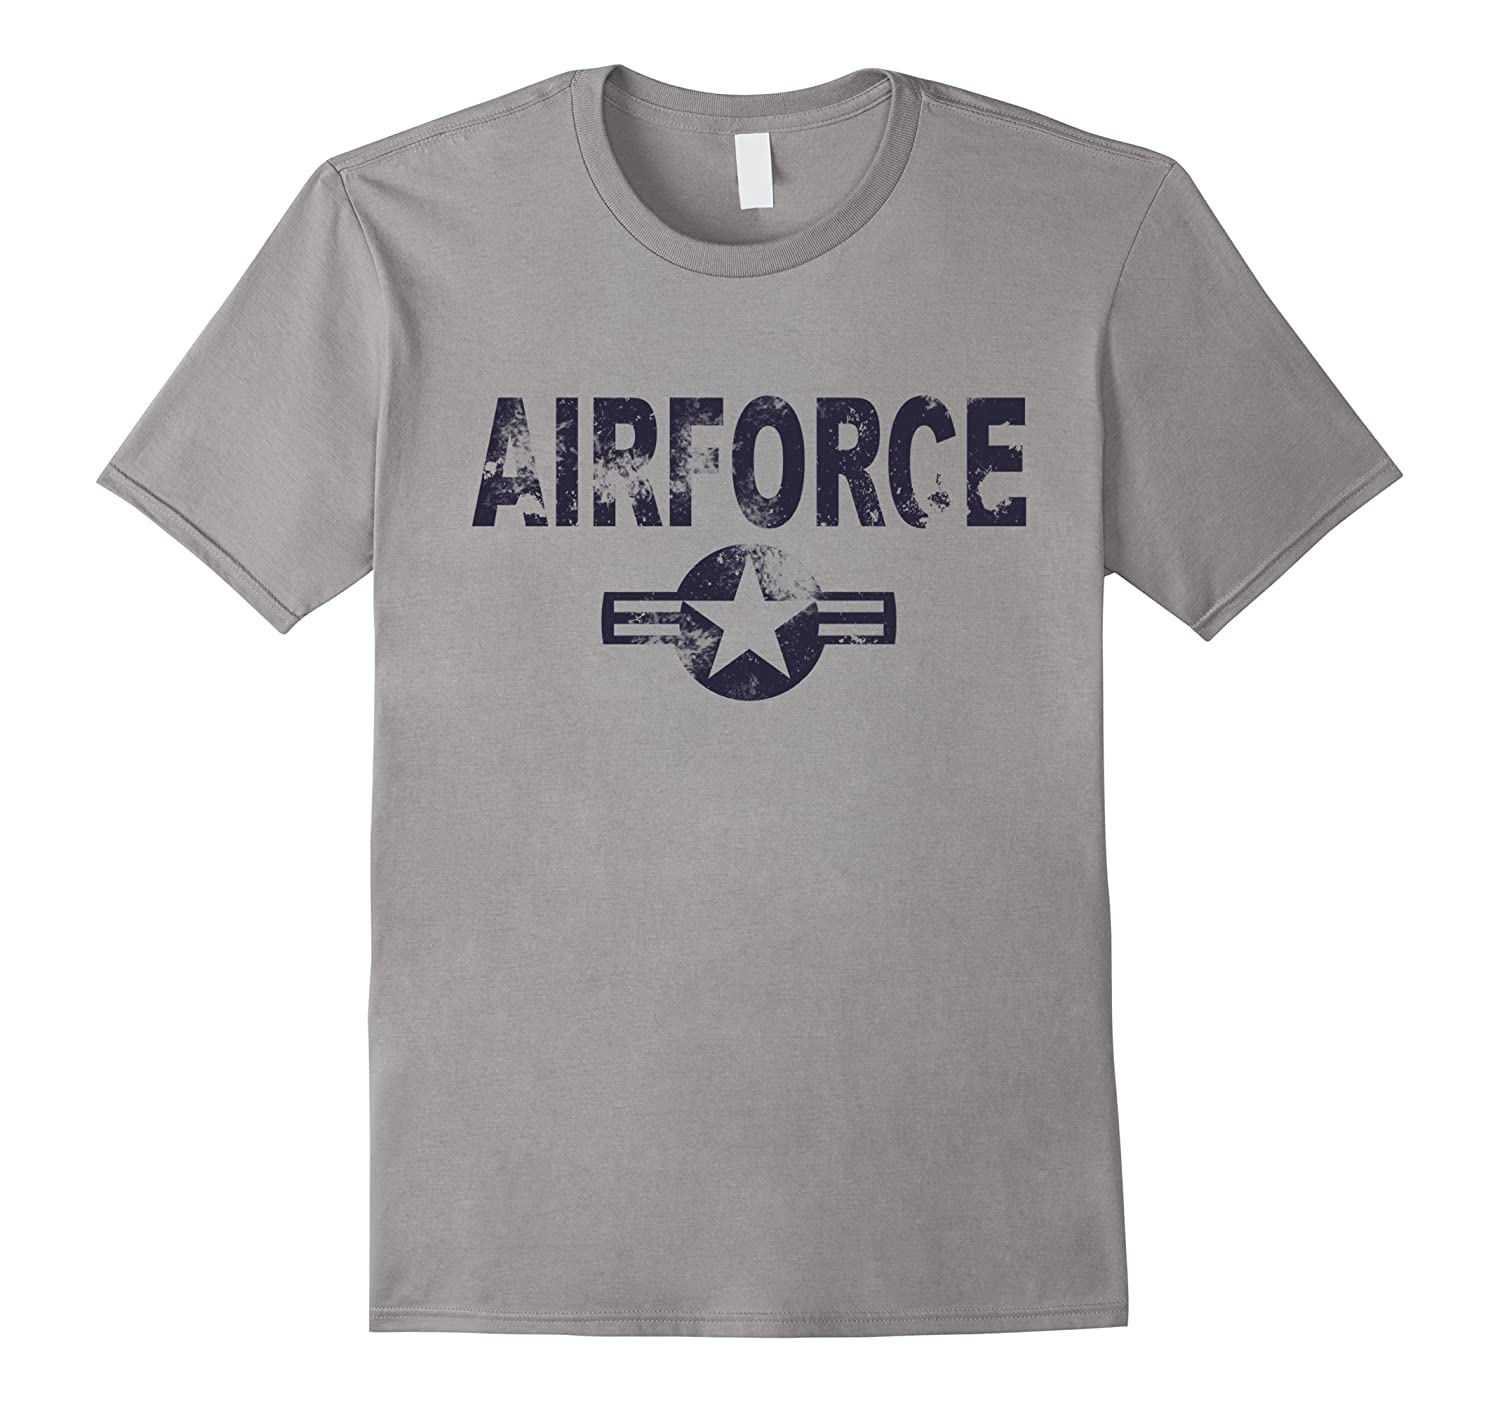 Airforce T-Shirt Cool Casual Military Distressed Top Tee-T-Shirt